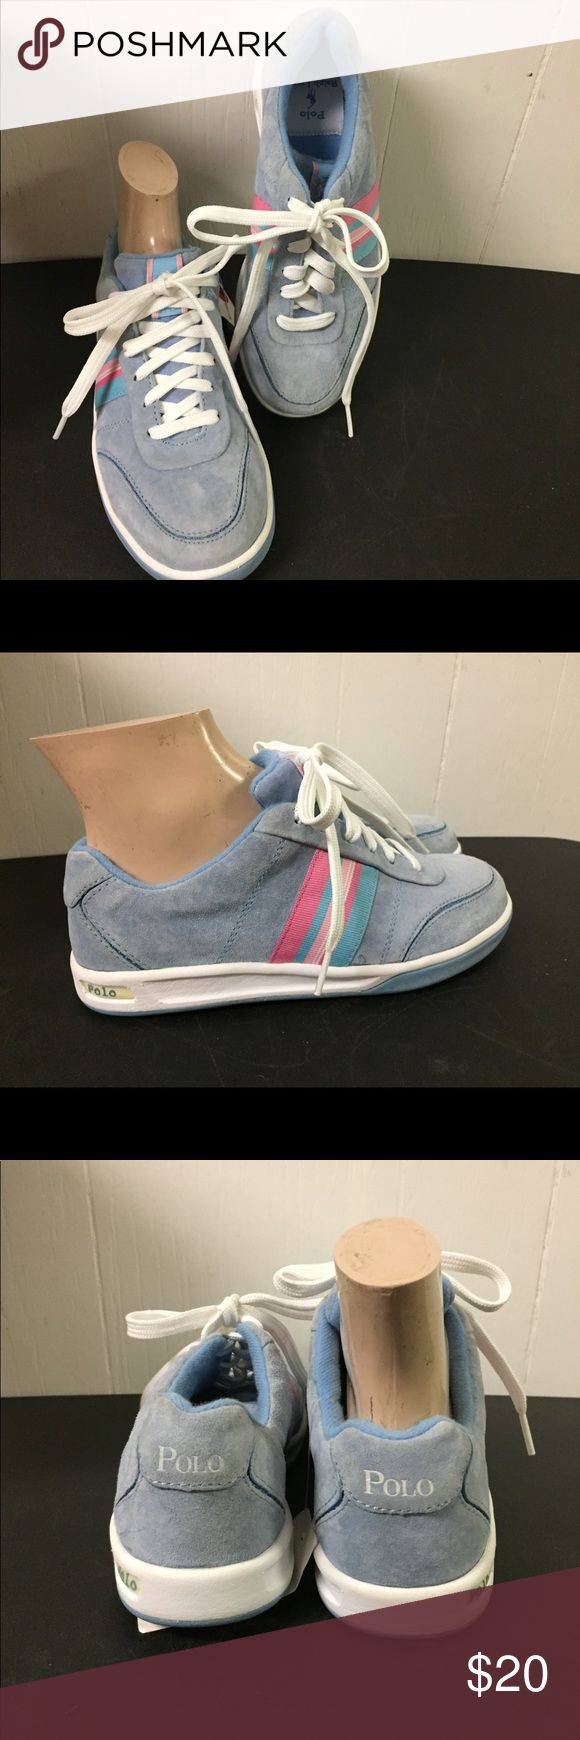 Polo Ralph Lauren Light Blue Suede Leather Shoes Brand new excellent clean condition.  Size 6. Polo by Ralph Lauren Shoes